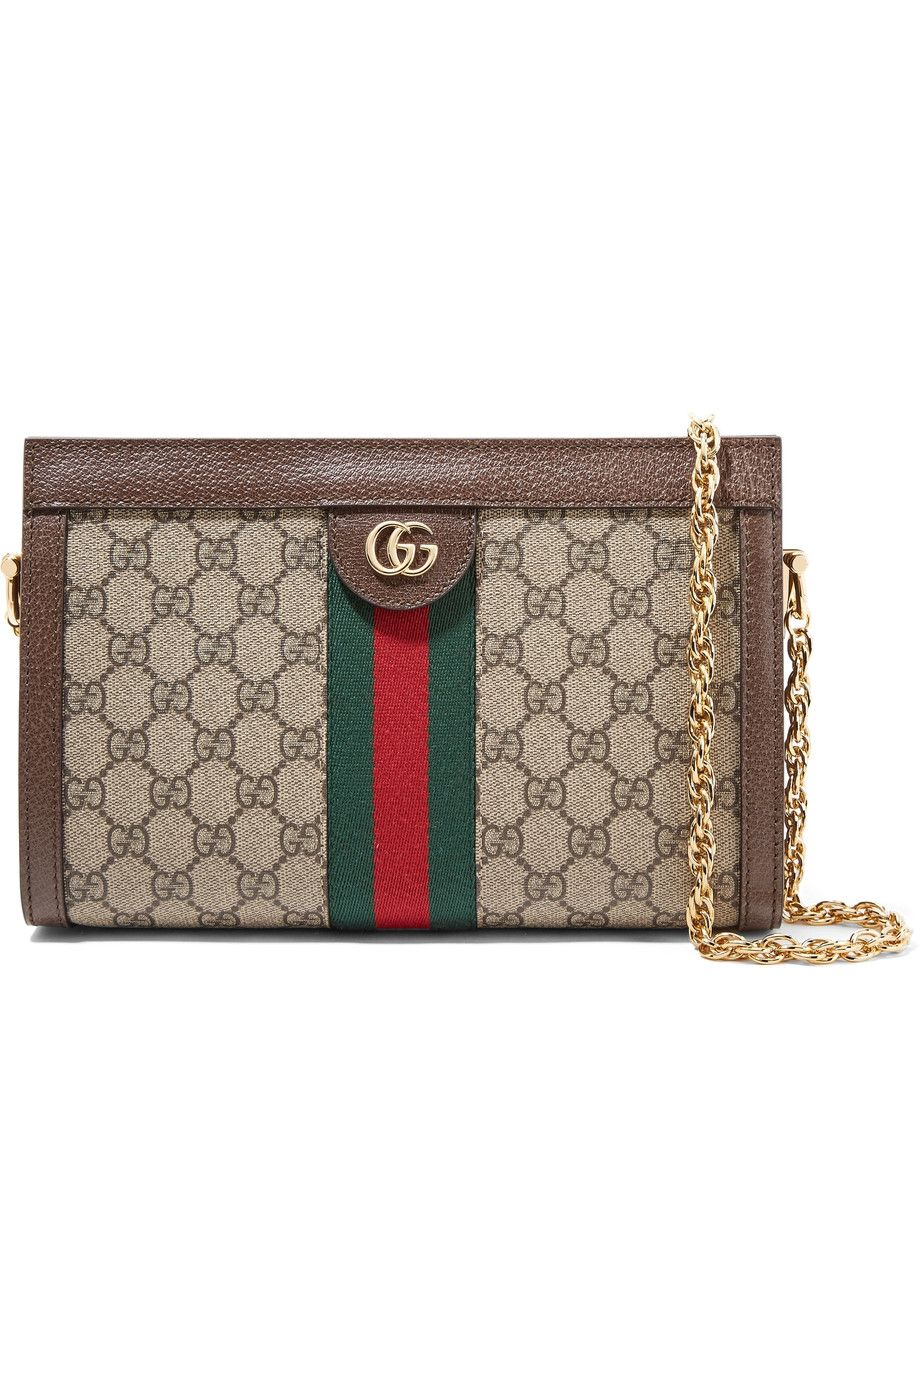 Ophidia Textured Leather-trimmed Printed Coated-canvas Shoulder Bag - Beige Gucci 2QaWD7x